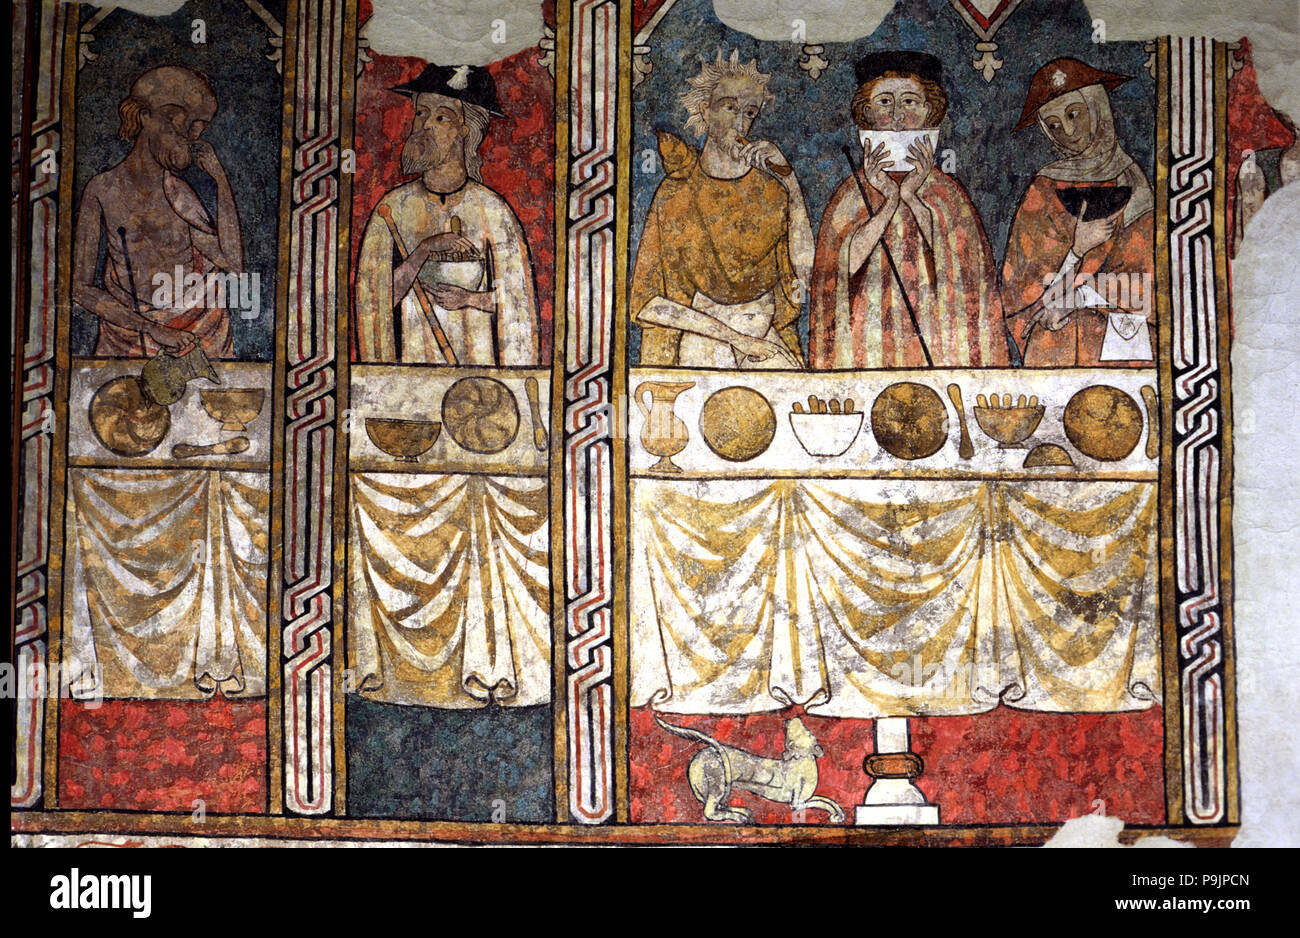 Murals in the refectory of the Canonja of the 'Seu Vella' of Lleida. 'The Canonical Pia Almoina' gave food to the poor and pilgrims. - Stock Image